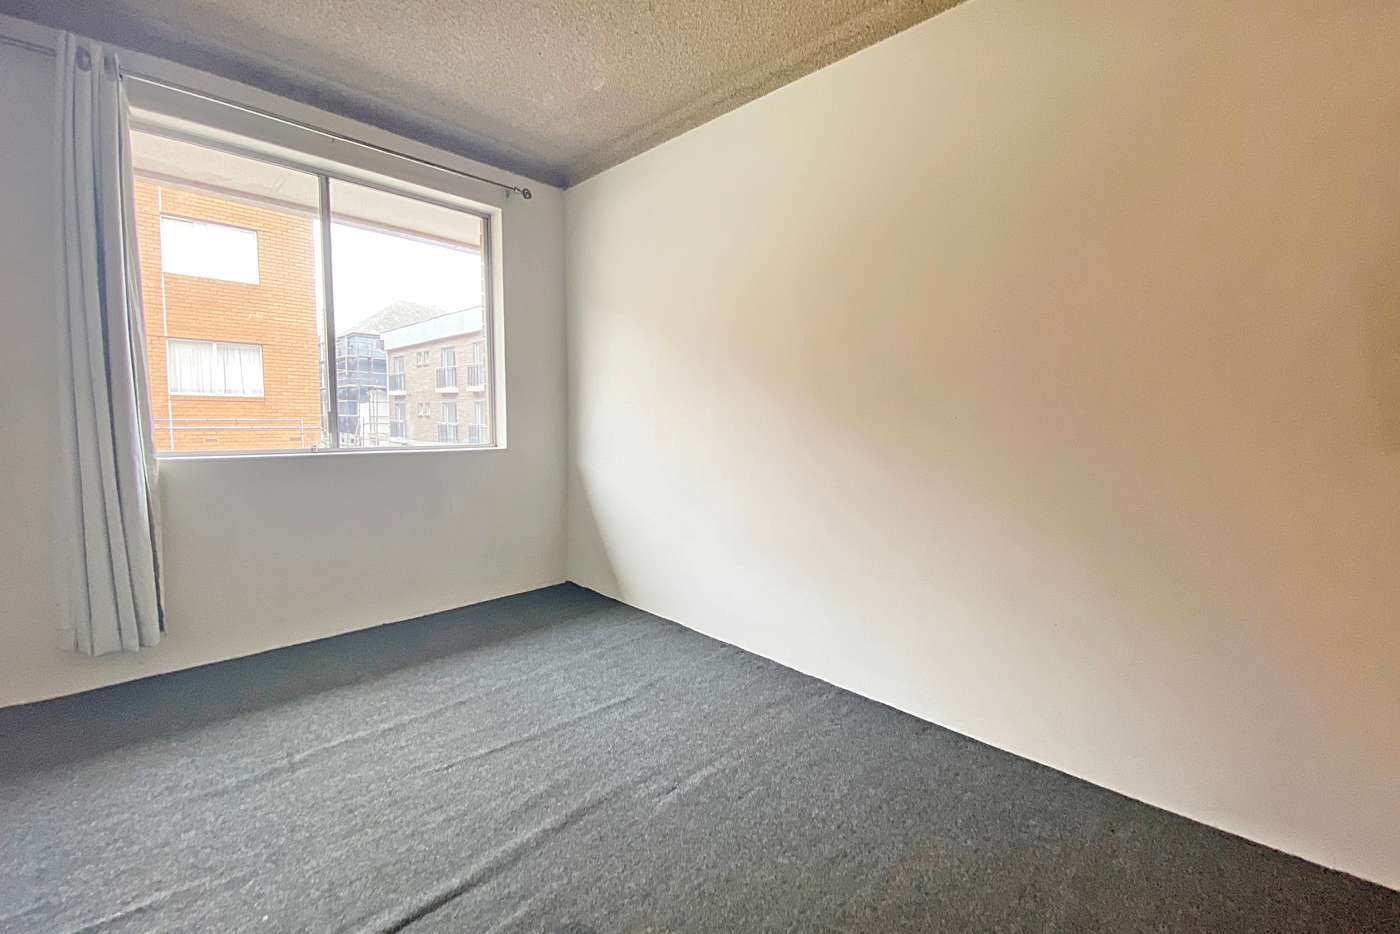 Sixth view of Homely unit listing, 23/119 Cavendish Street, Stanmore NSW 2048